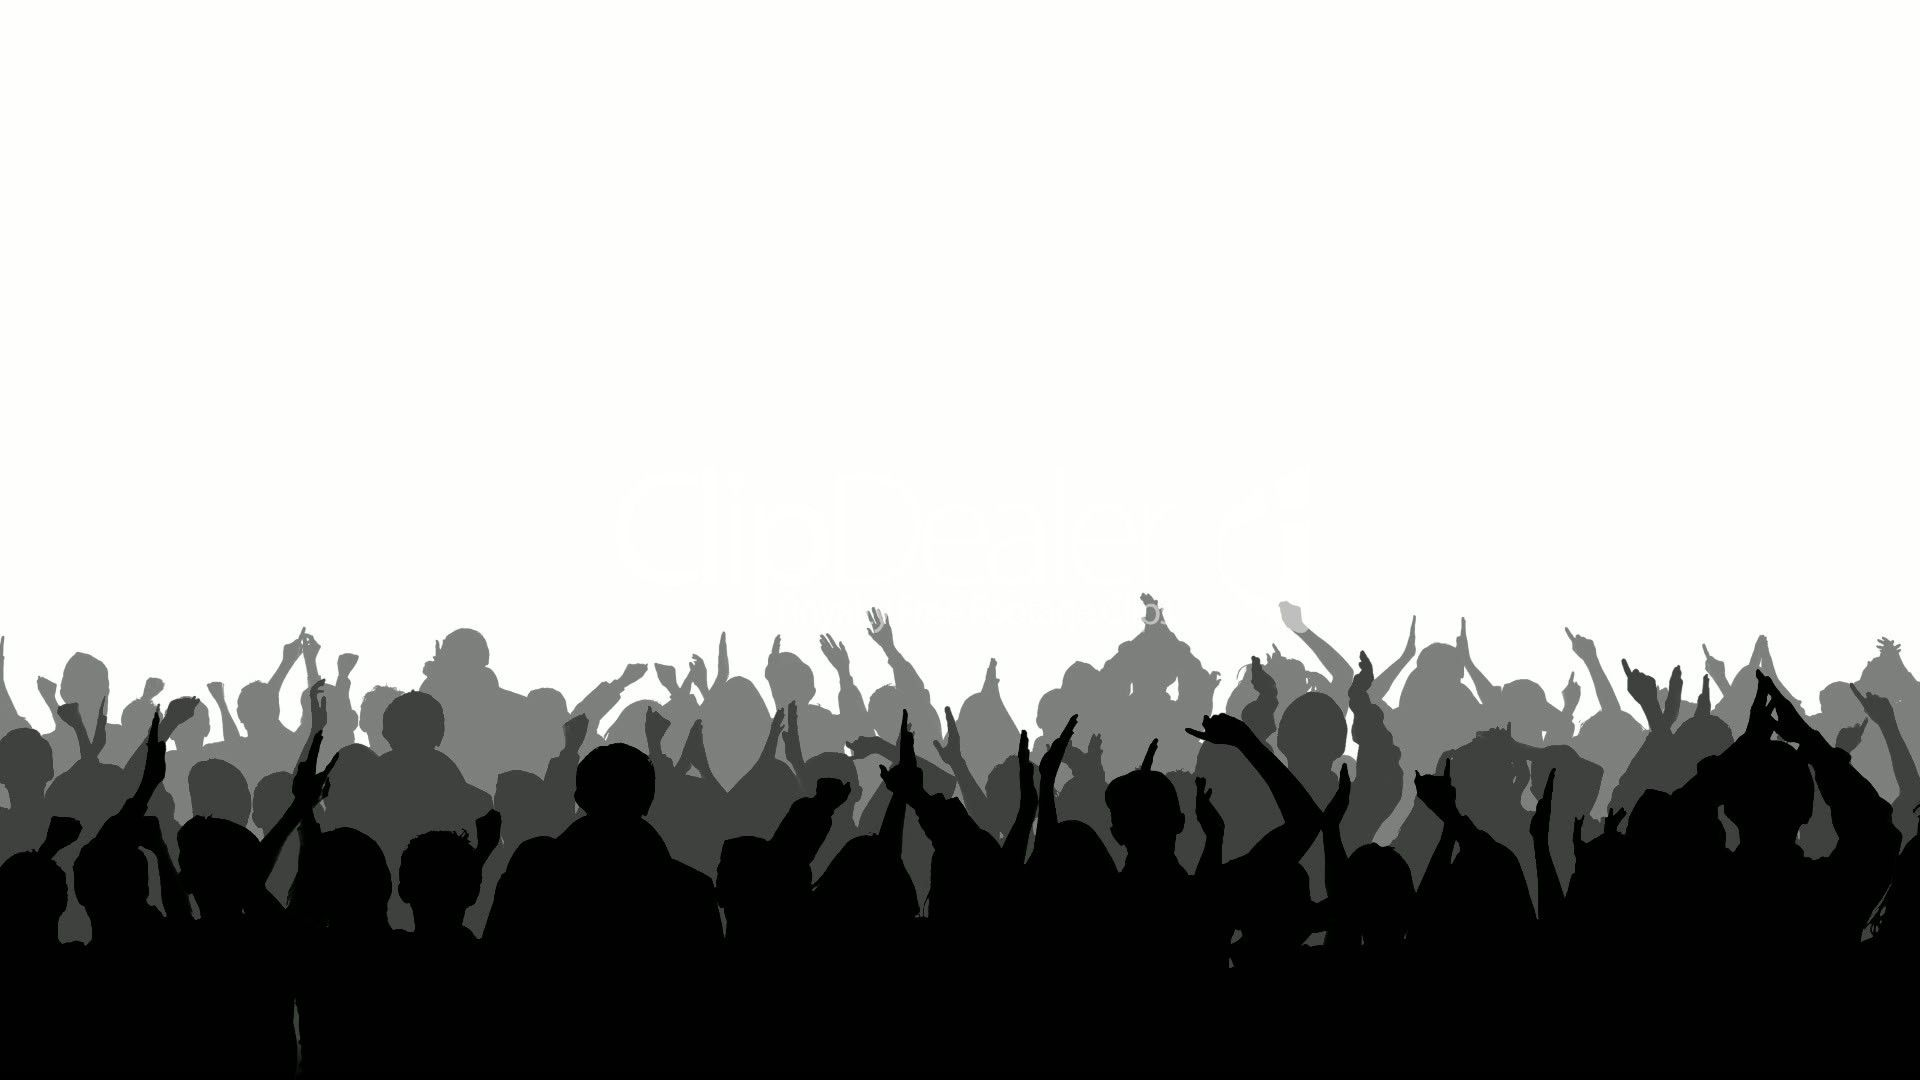 Shadow clipart crowd. Silhouettes cheering royalty free